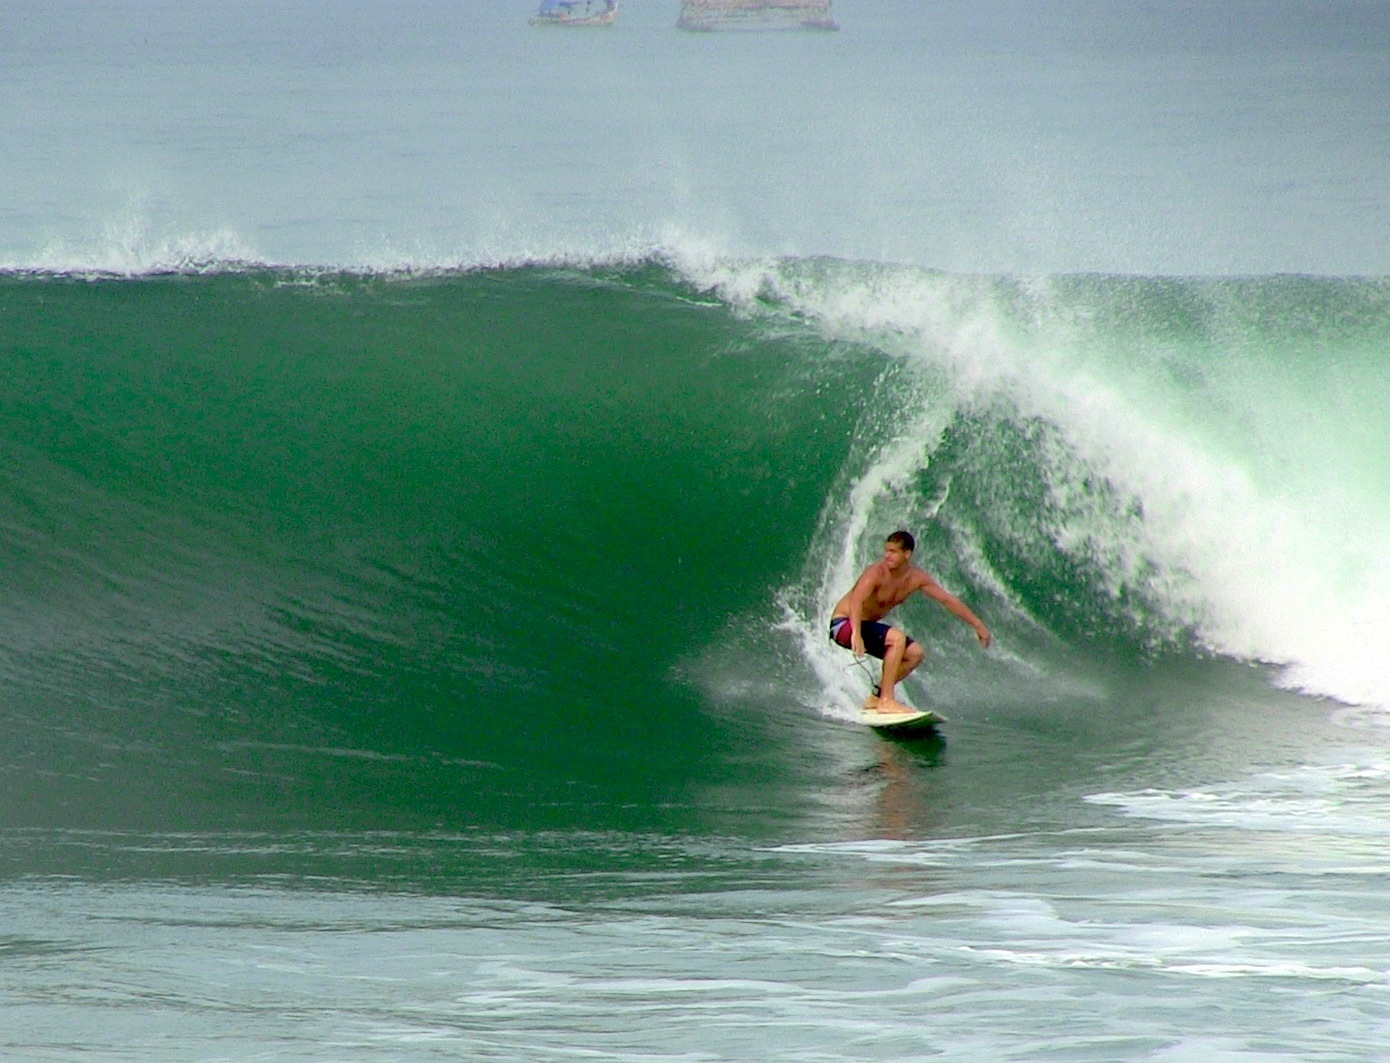 Java, Indonesia Surf  Culture Report: Dirt, Grunge,  Barrels  SnowBrains